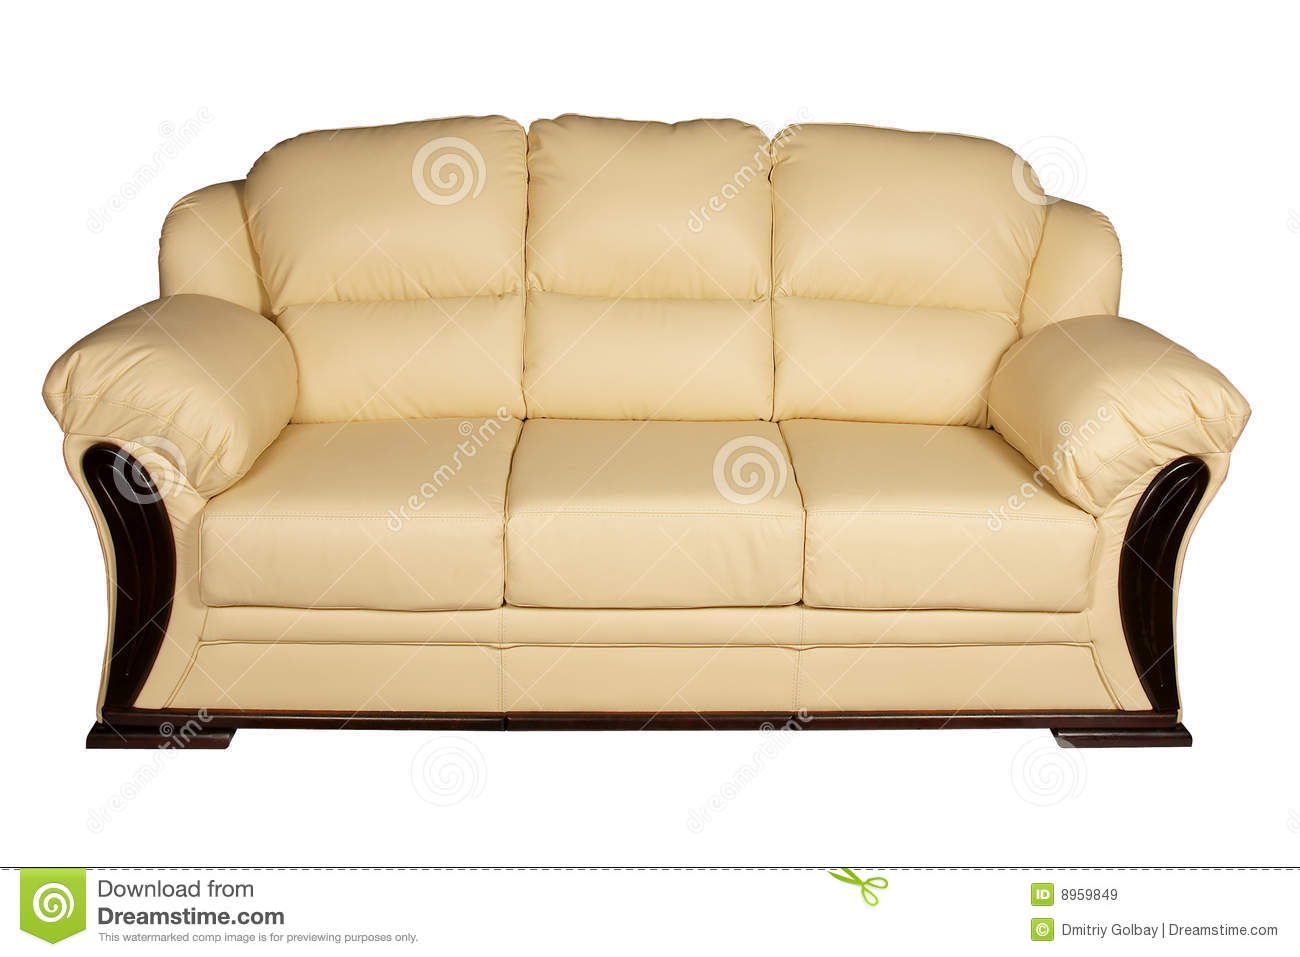 Cream leather sofa stock image. Image of comfort, colored ...